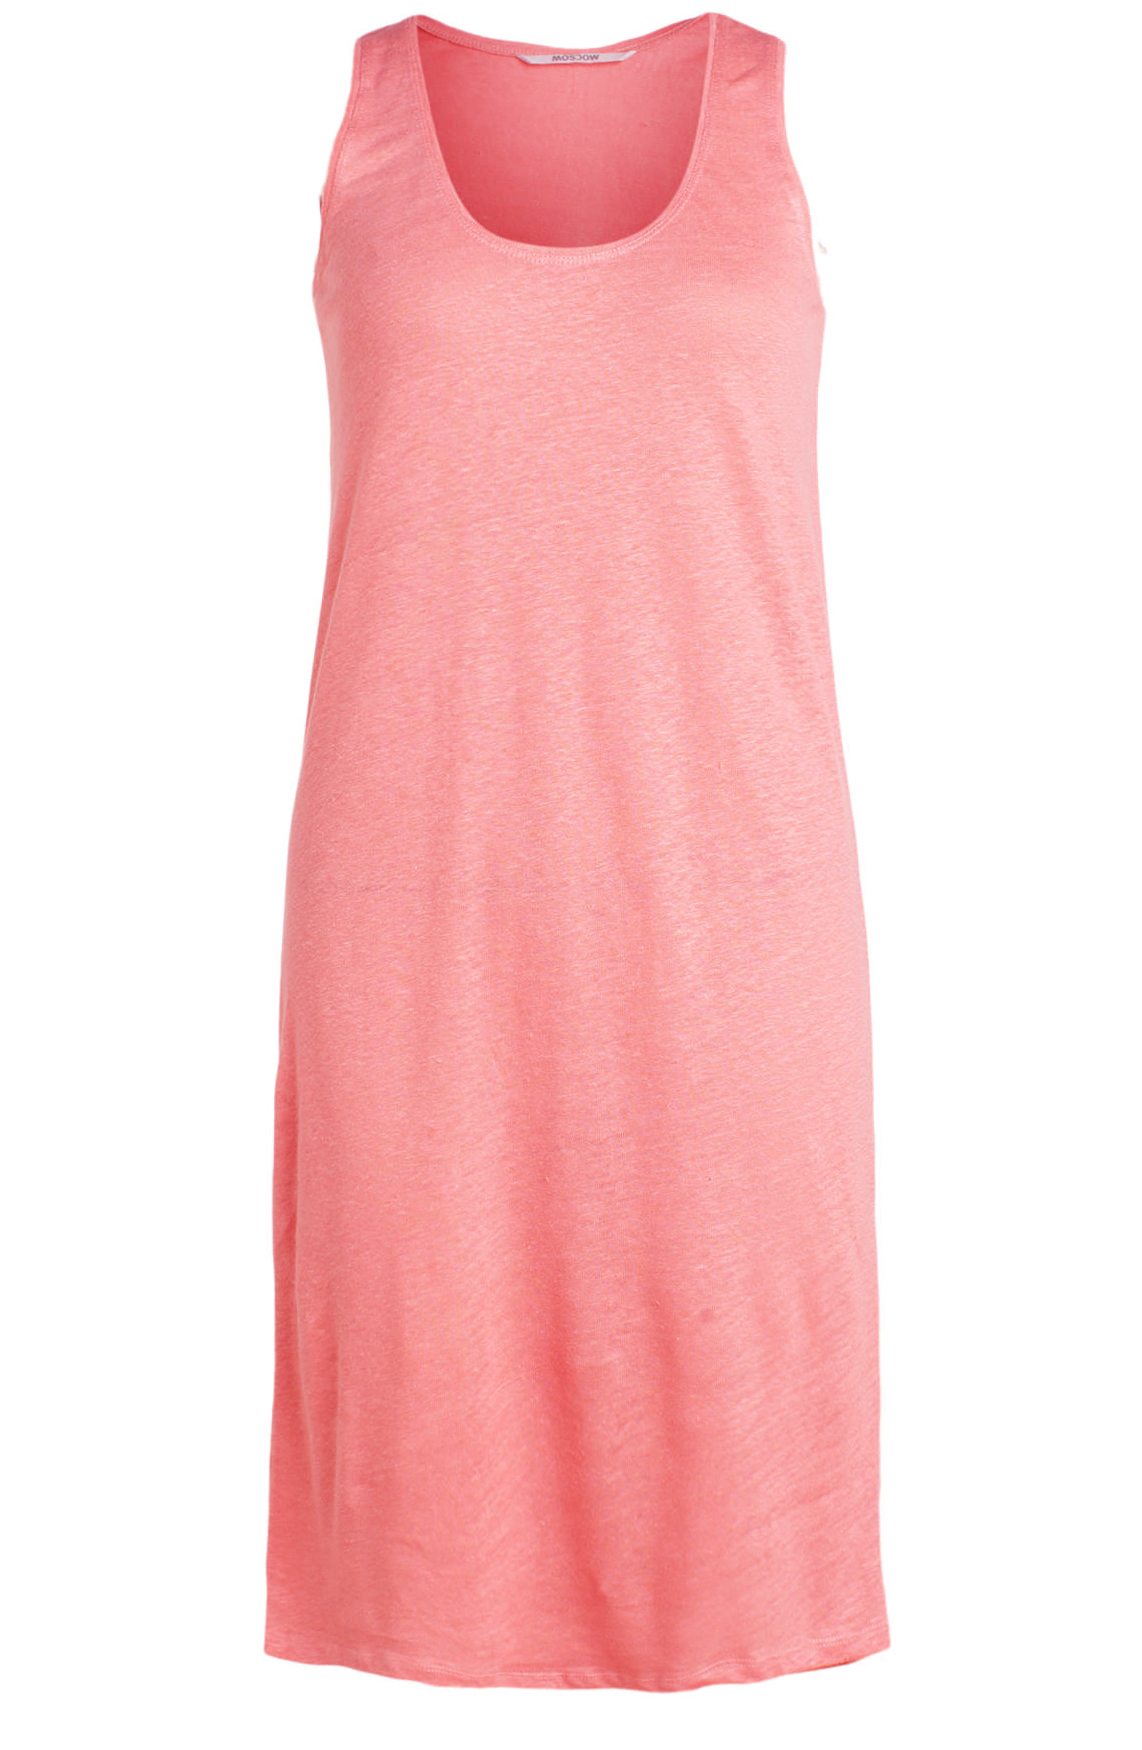 Moscow Dames Linen singlet dress roze